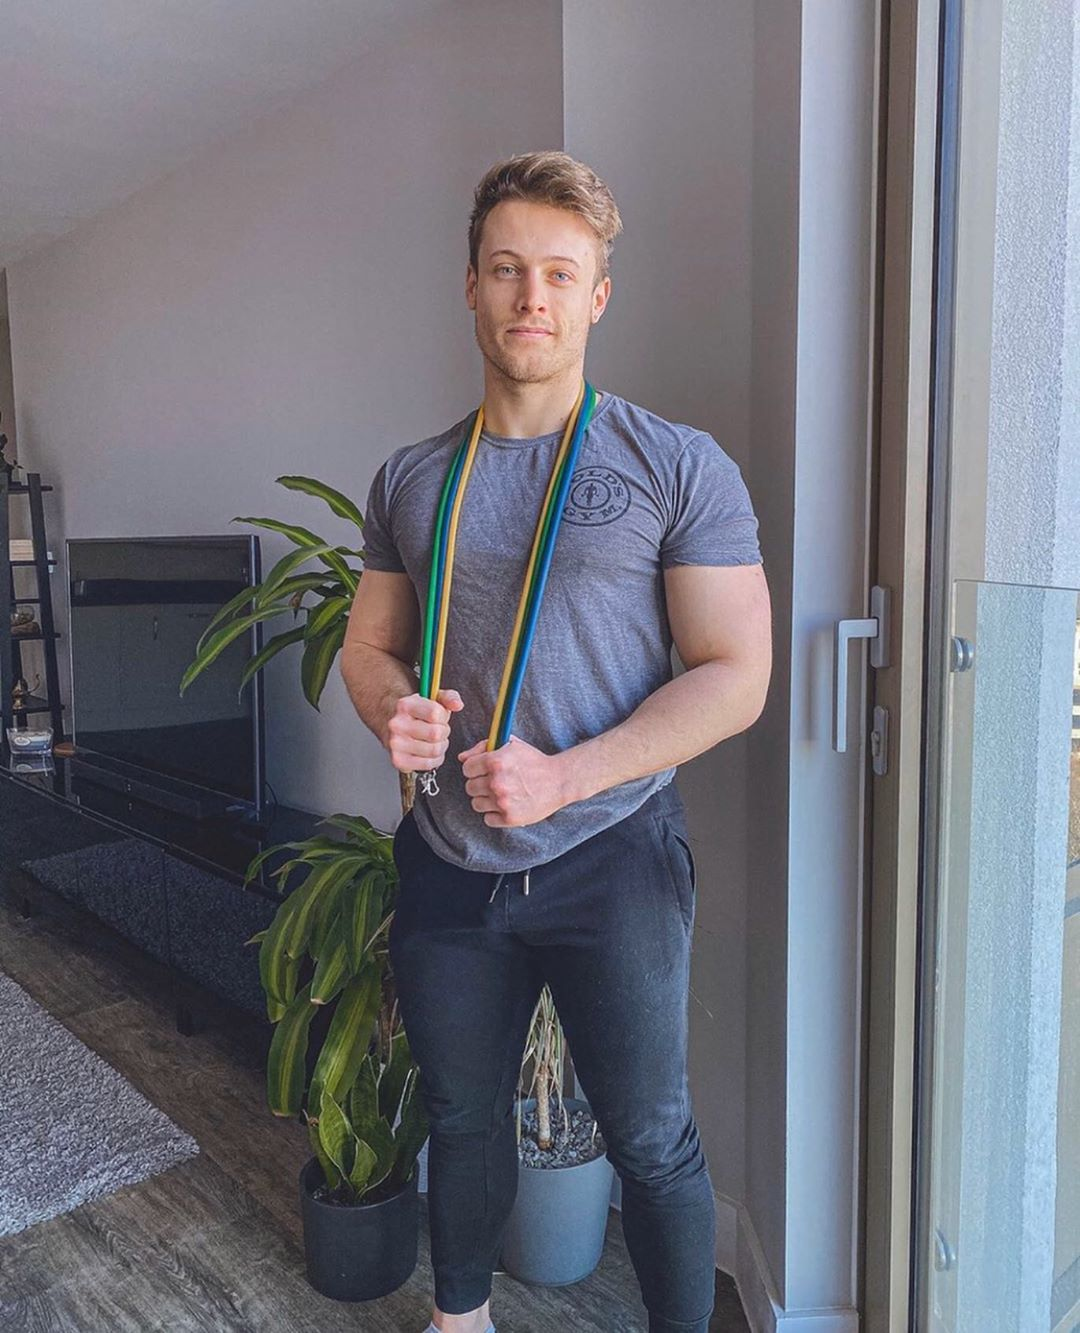 Daniel J. review of Resistance Bands Set | Stay Fit